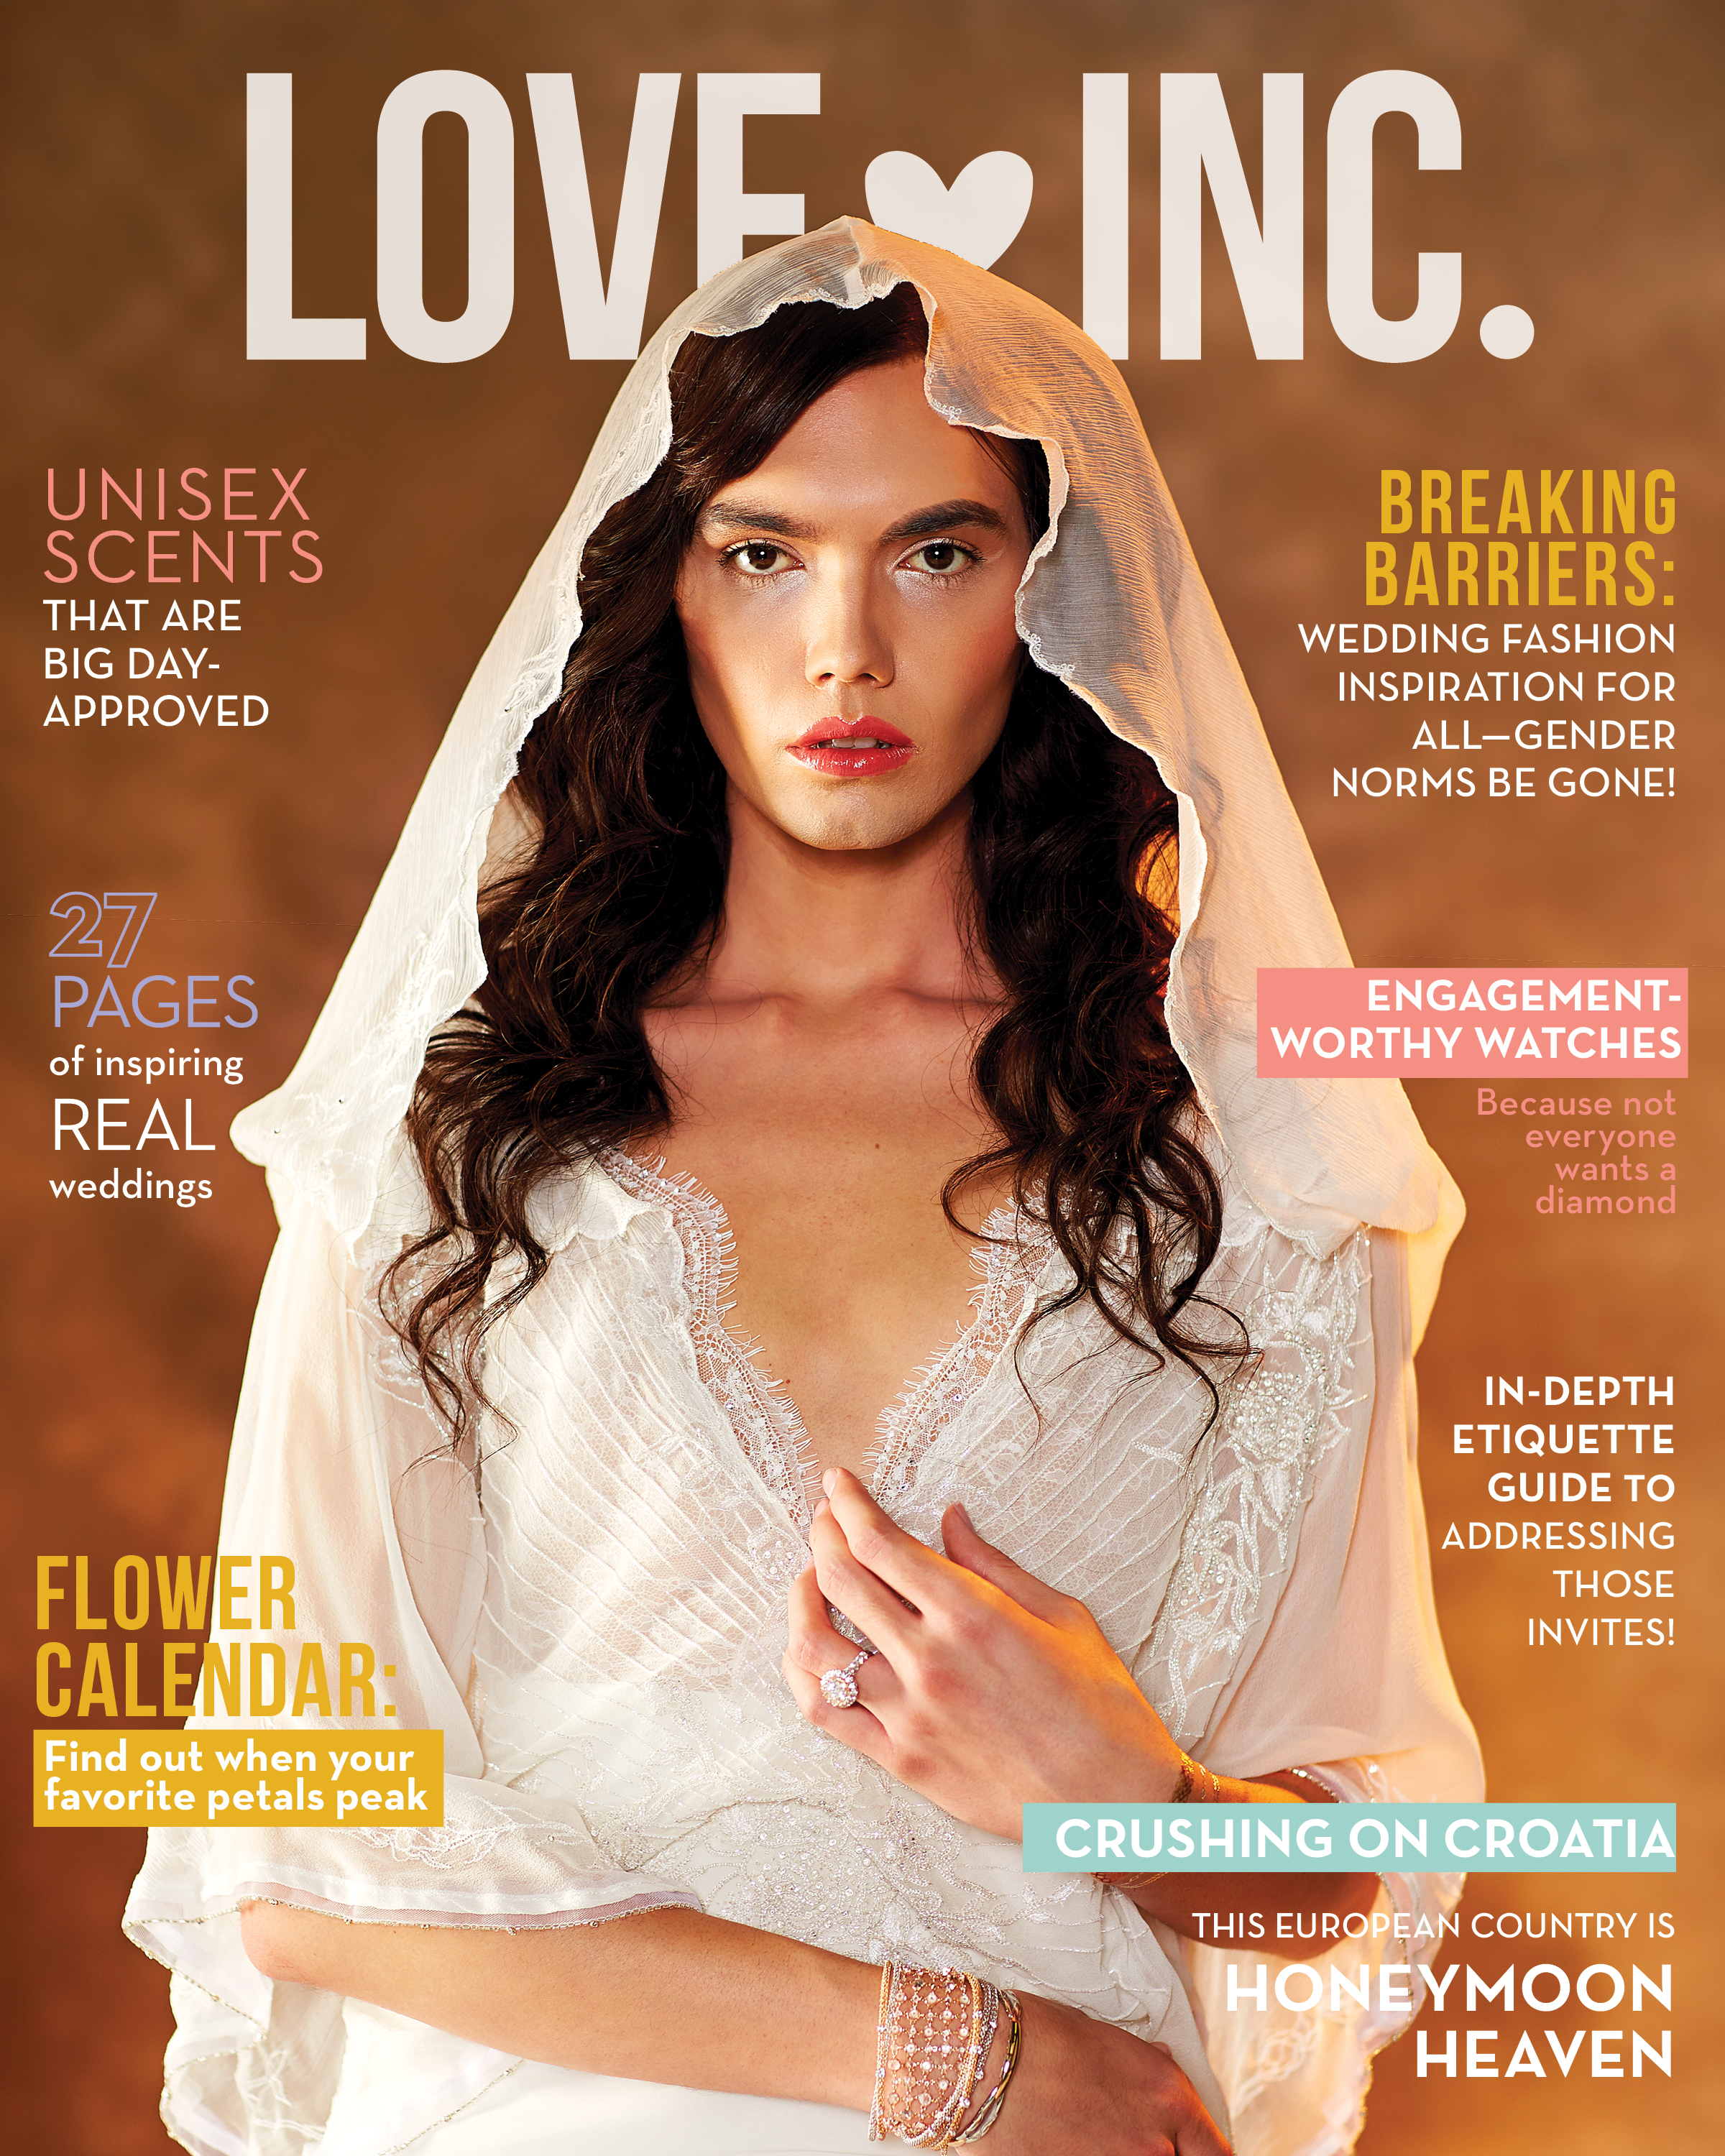 2015-01-16-LoveInc_IssueThree_Cover2.jpg